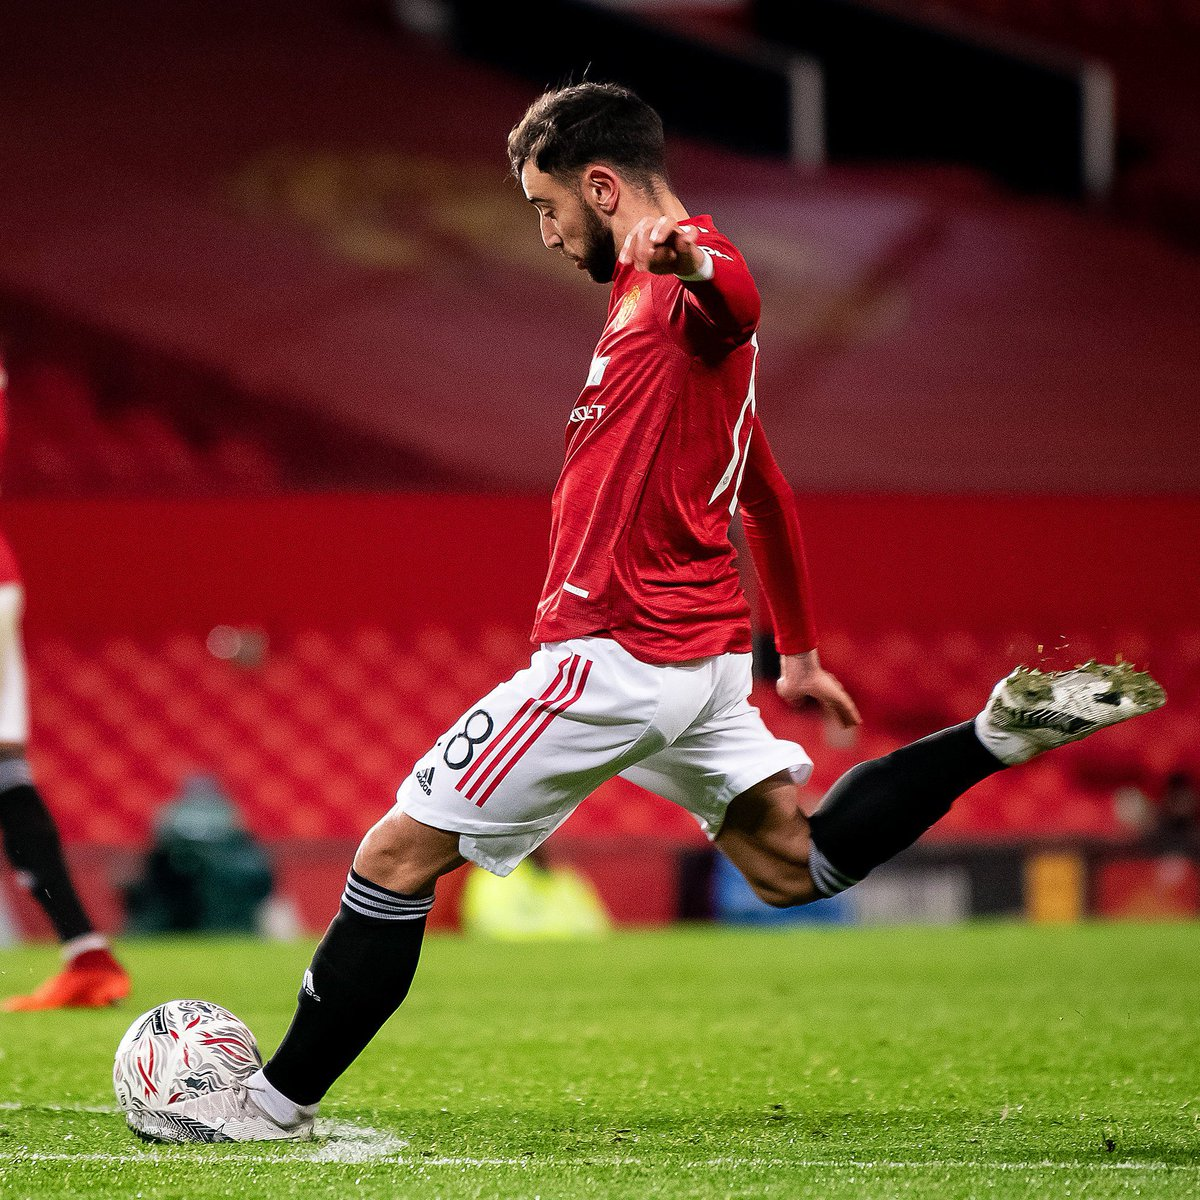 """Solskjær: """"When you leave him [Bruno Fernandes] out like I did today, he stayed about 45 minutes after training yesterday shooting free kicks so I was pretty confident he could score one if he got the chance."""" [BBC] #MUNLIV 🔴#MUFC ⭕MUFC"""